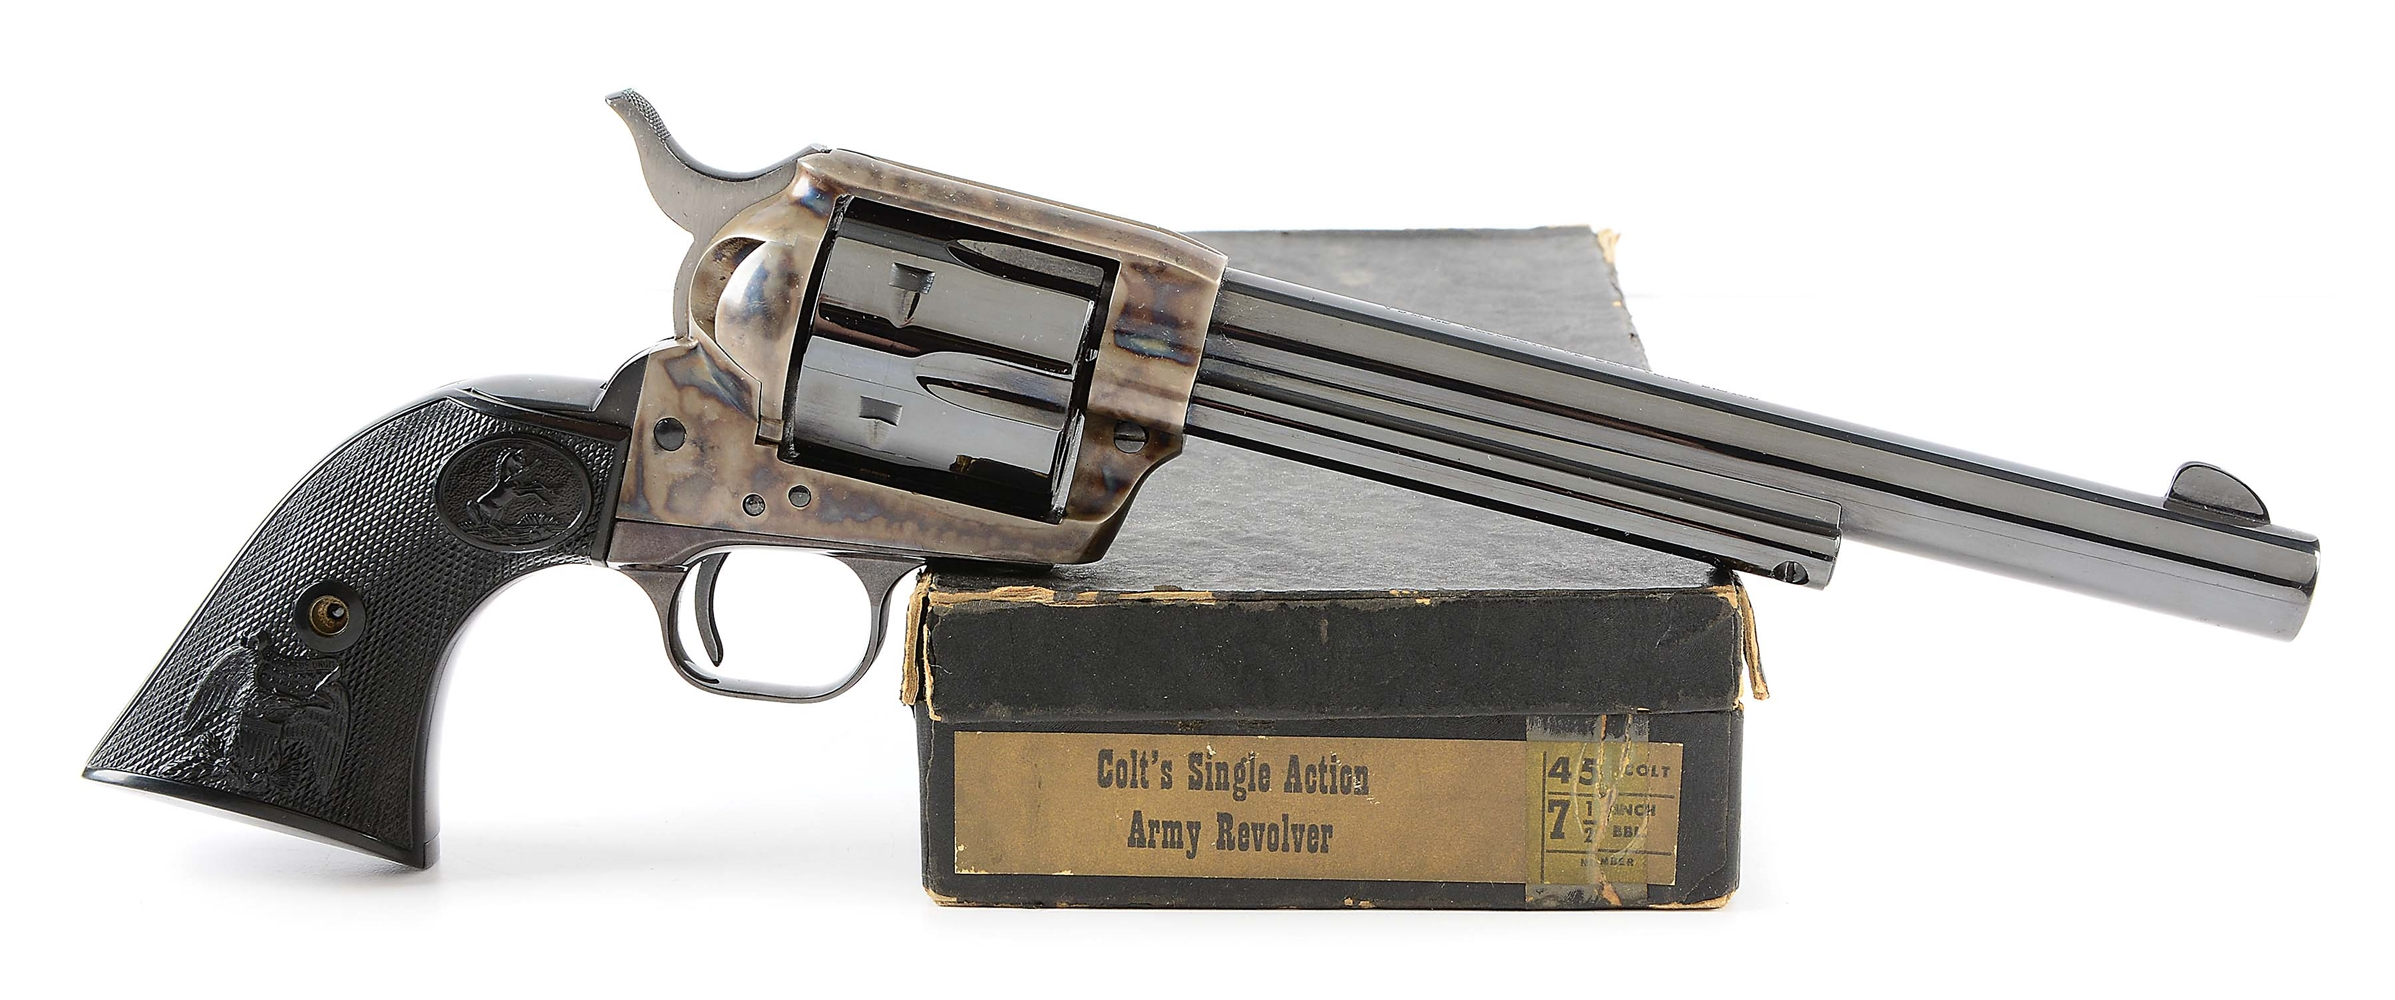 (M) Boxed 2nd Generation Colt Single Action Army Revolver (1974).